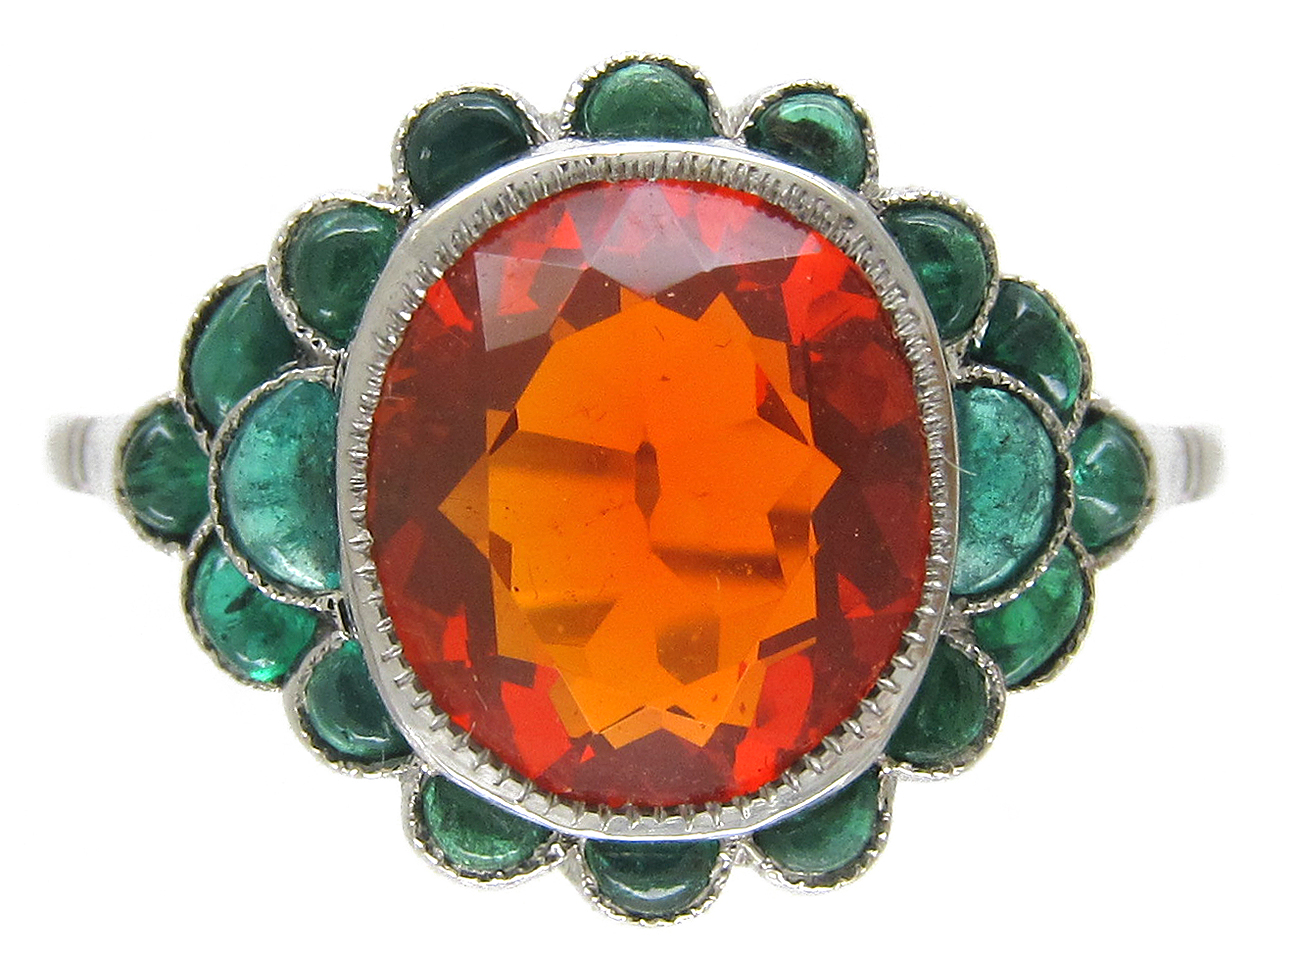 Edwardian Fire Opal Amp Carved Cabochon Emerald Ring The